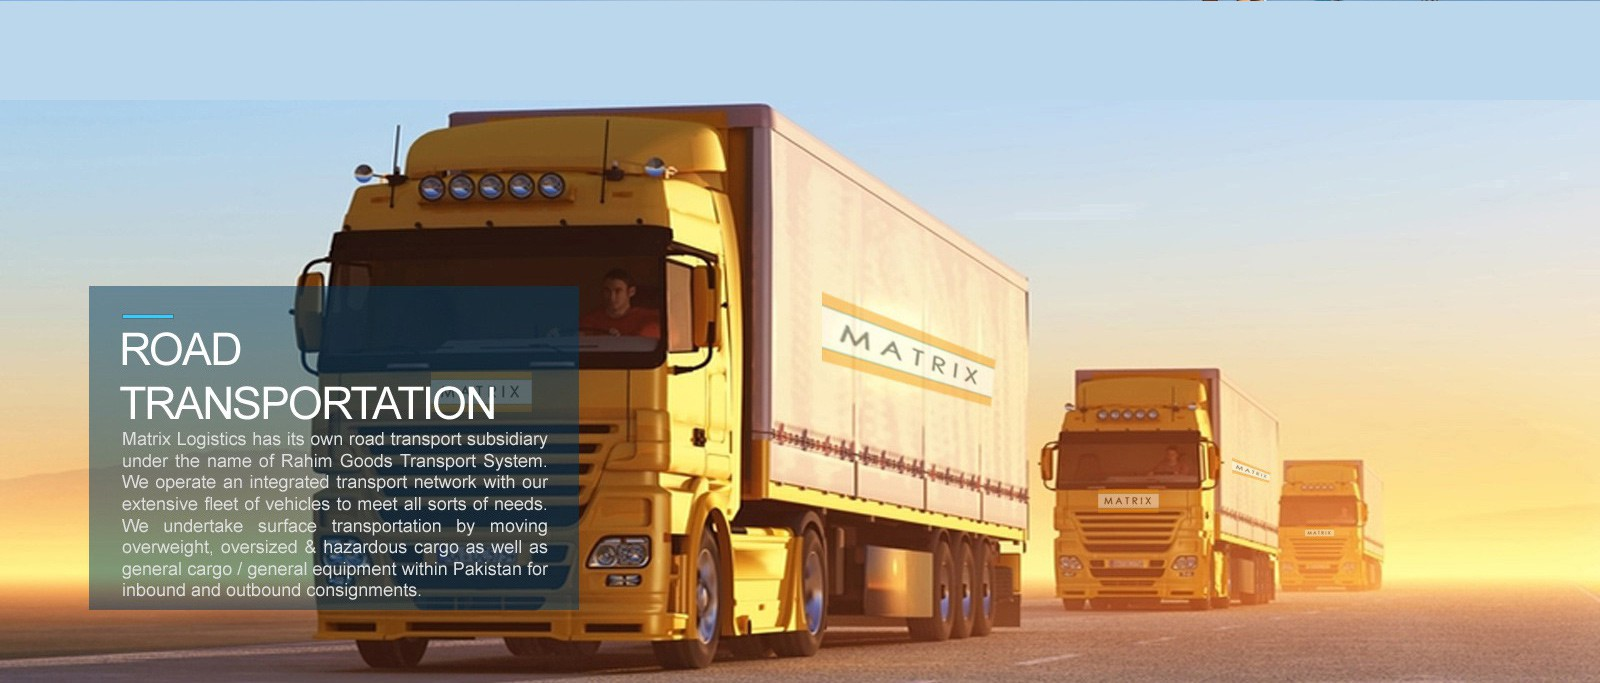 Matrix-Logistics-Road-Transportation